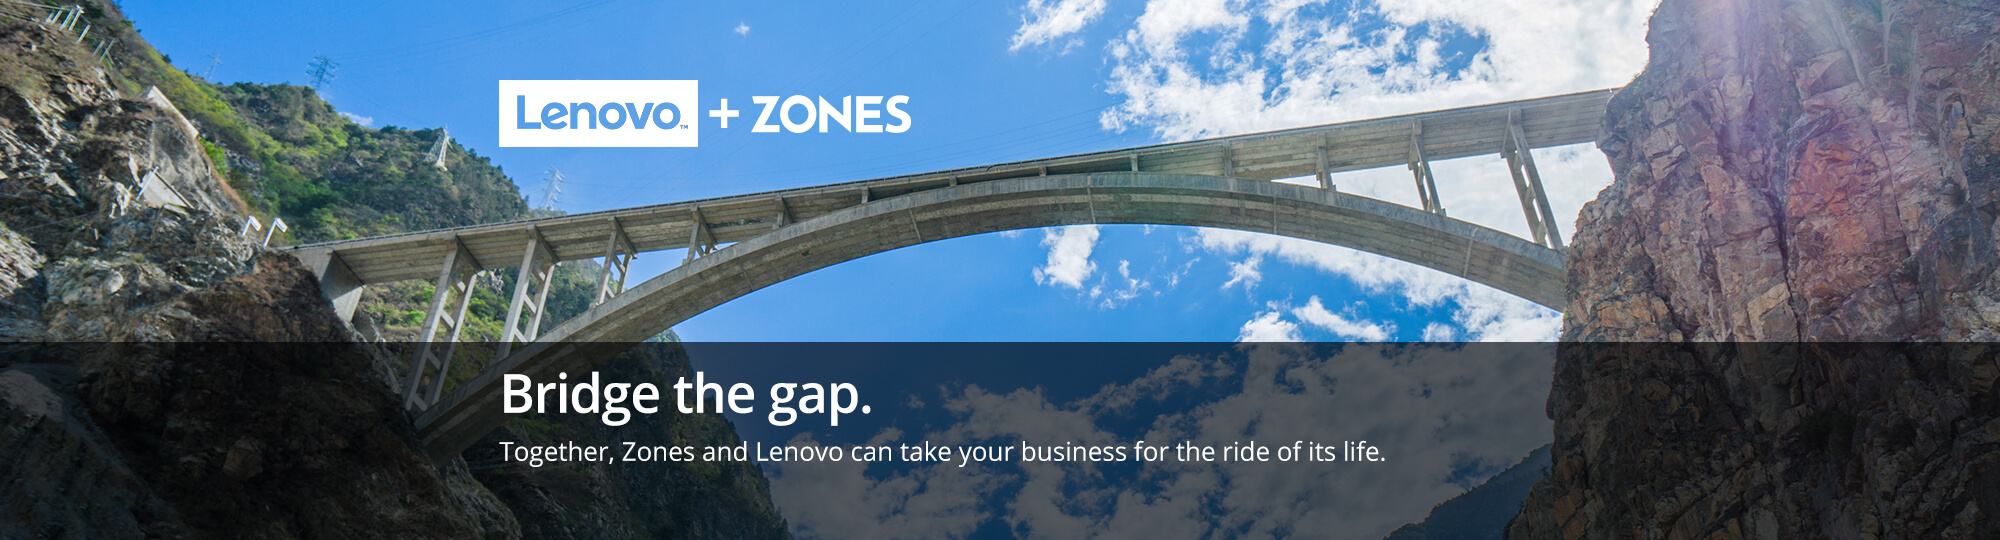 Bridge the gap. Together, Zones and Lenovo can take your business for the ride of its life.